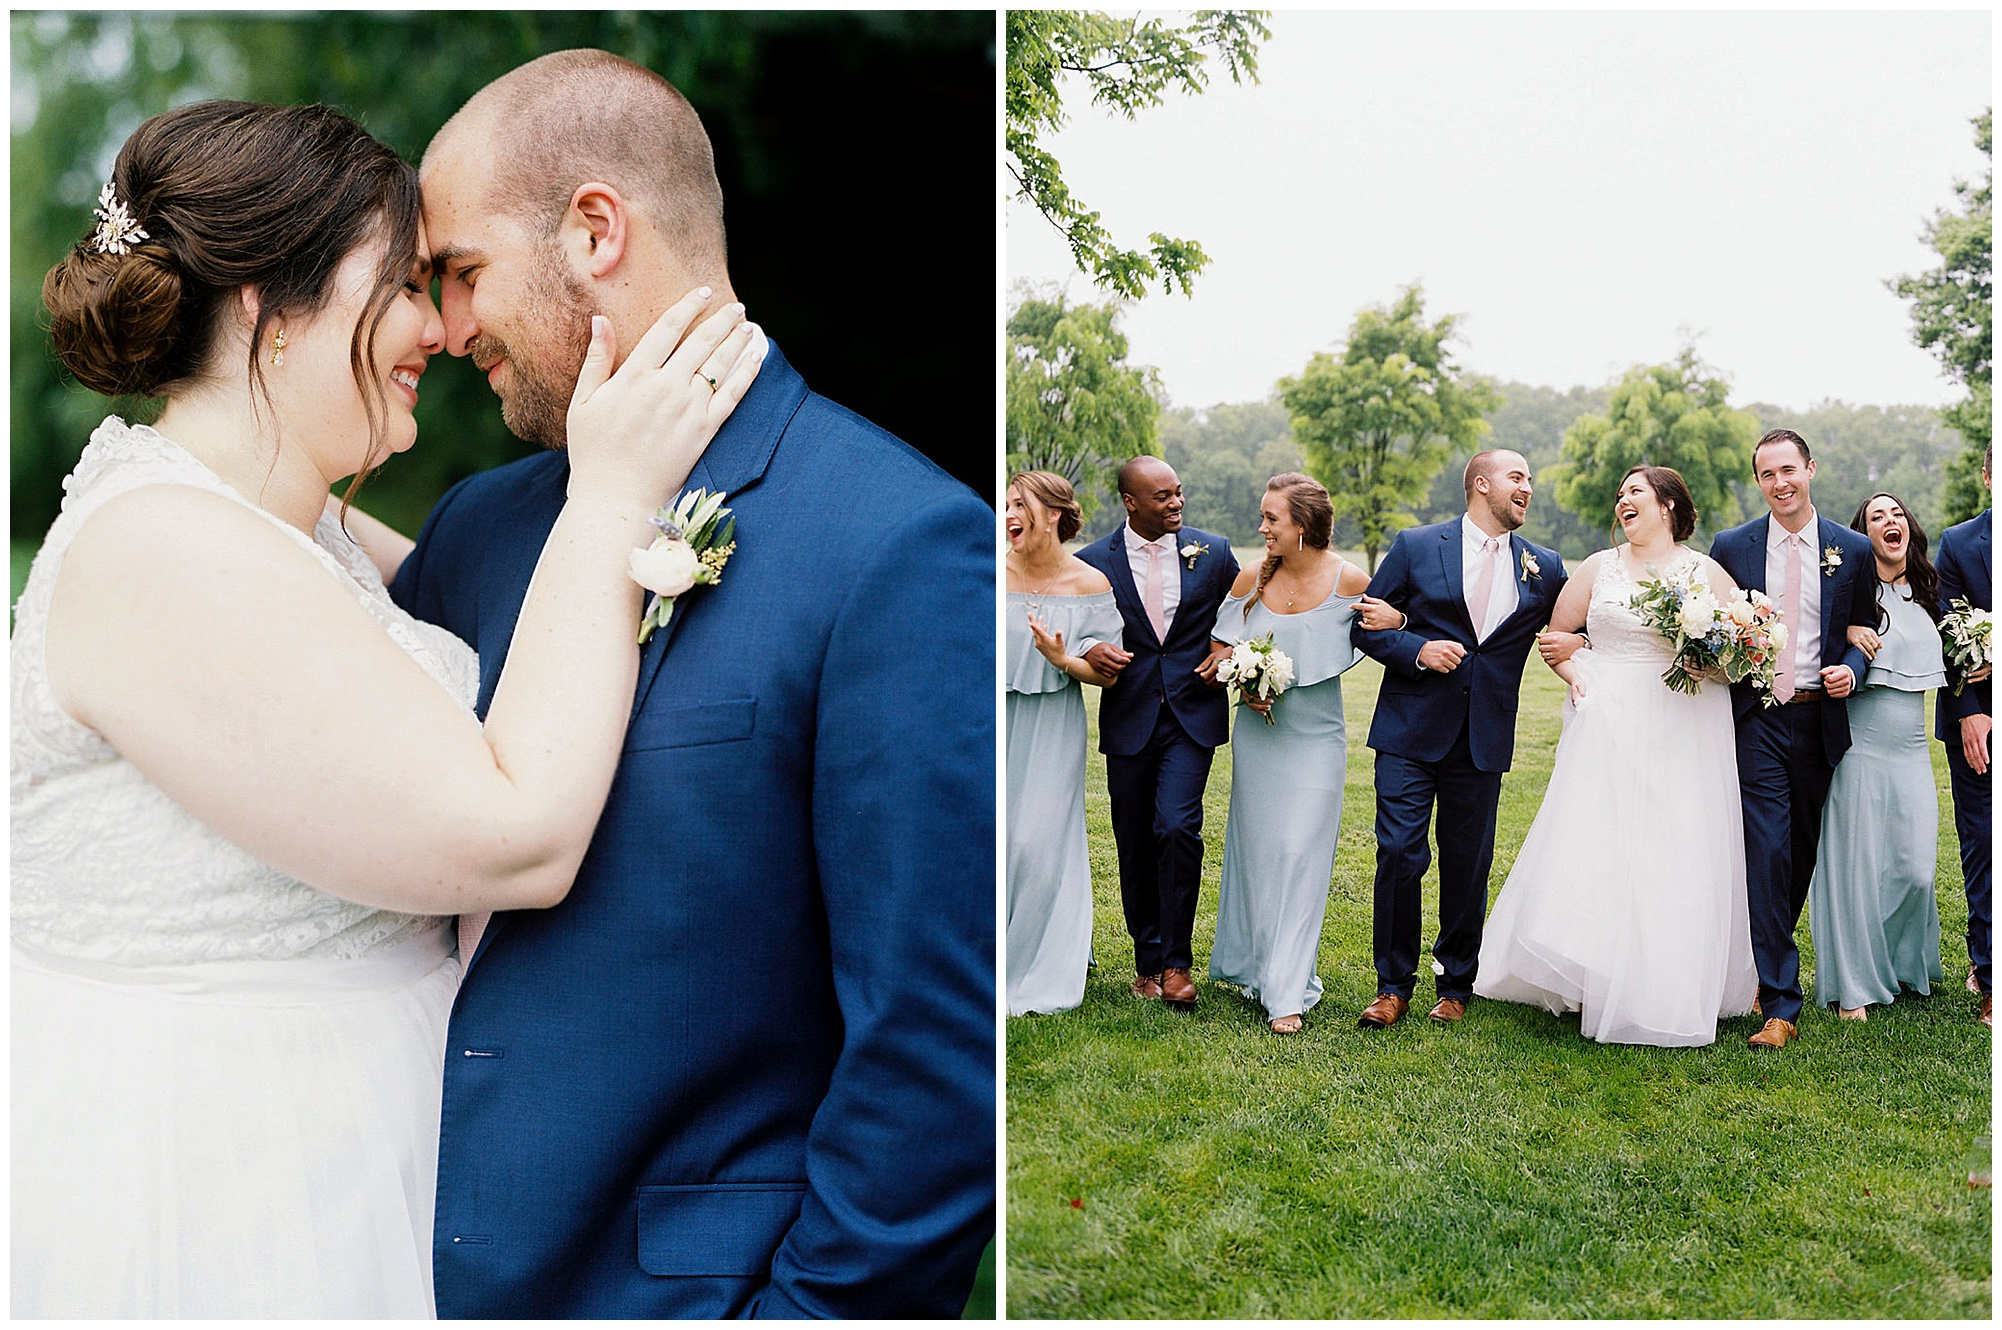 bride and groom portraits with wedding party. blue and pink attire. classic wedding inspiration and ideas for any season. now featured on my eastern shore wedding